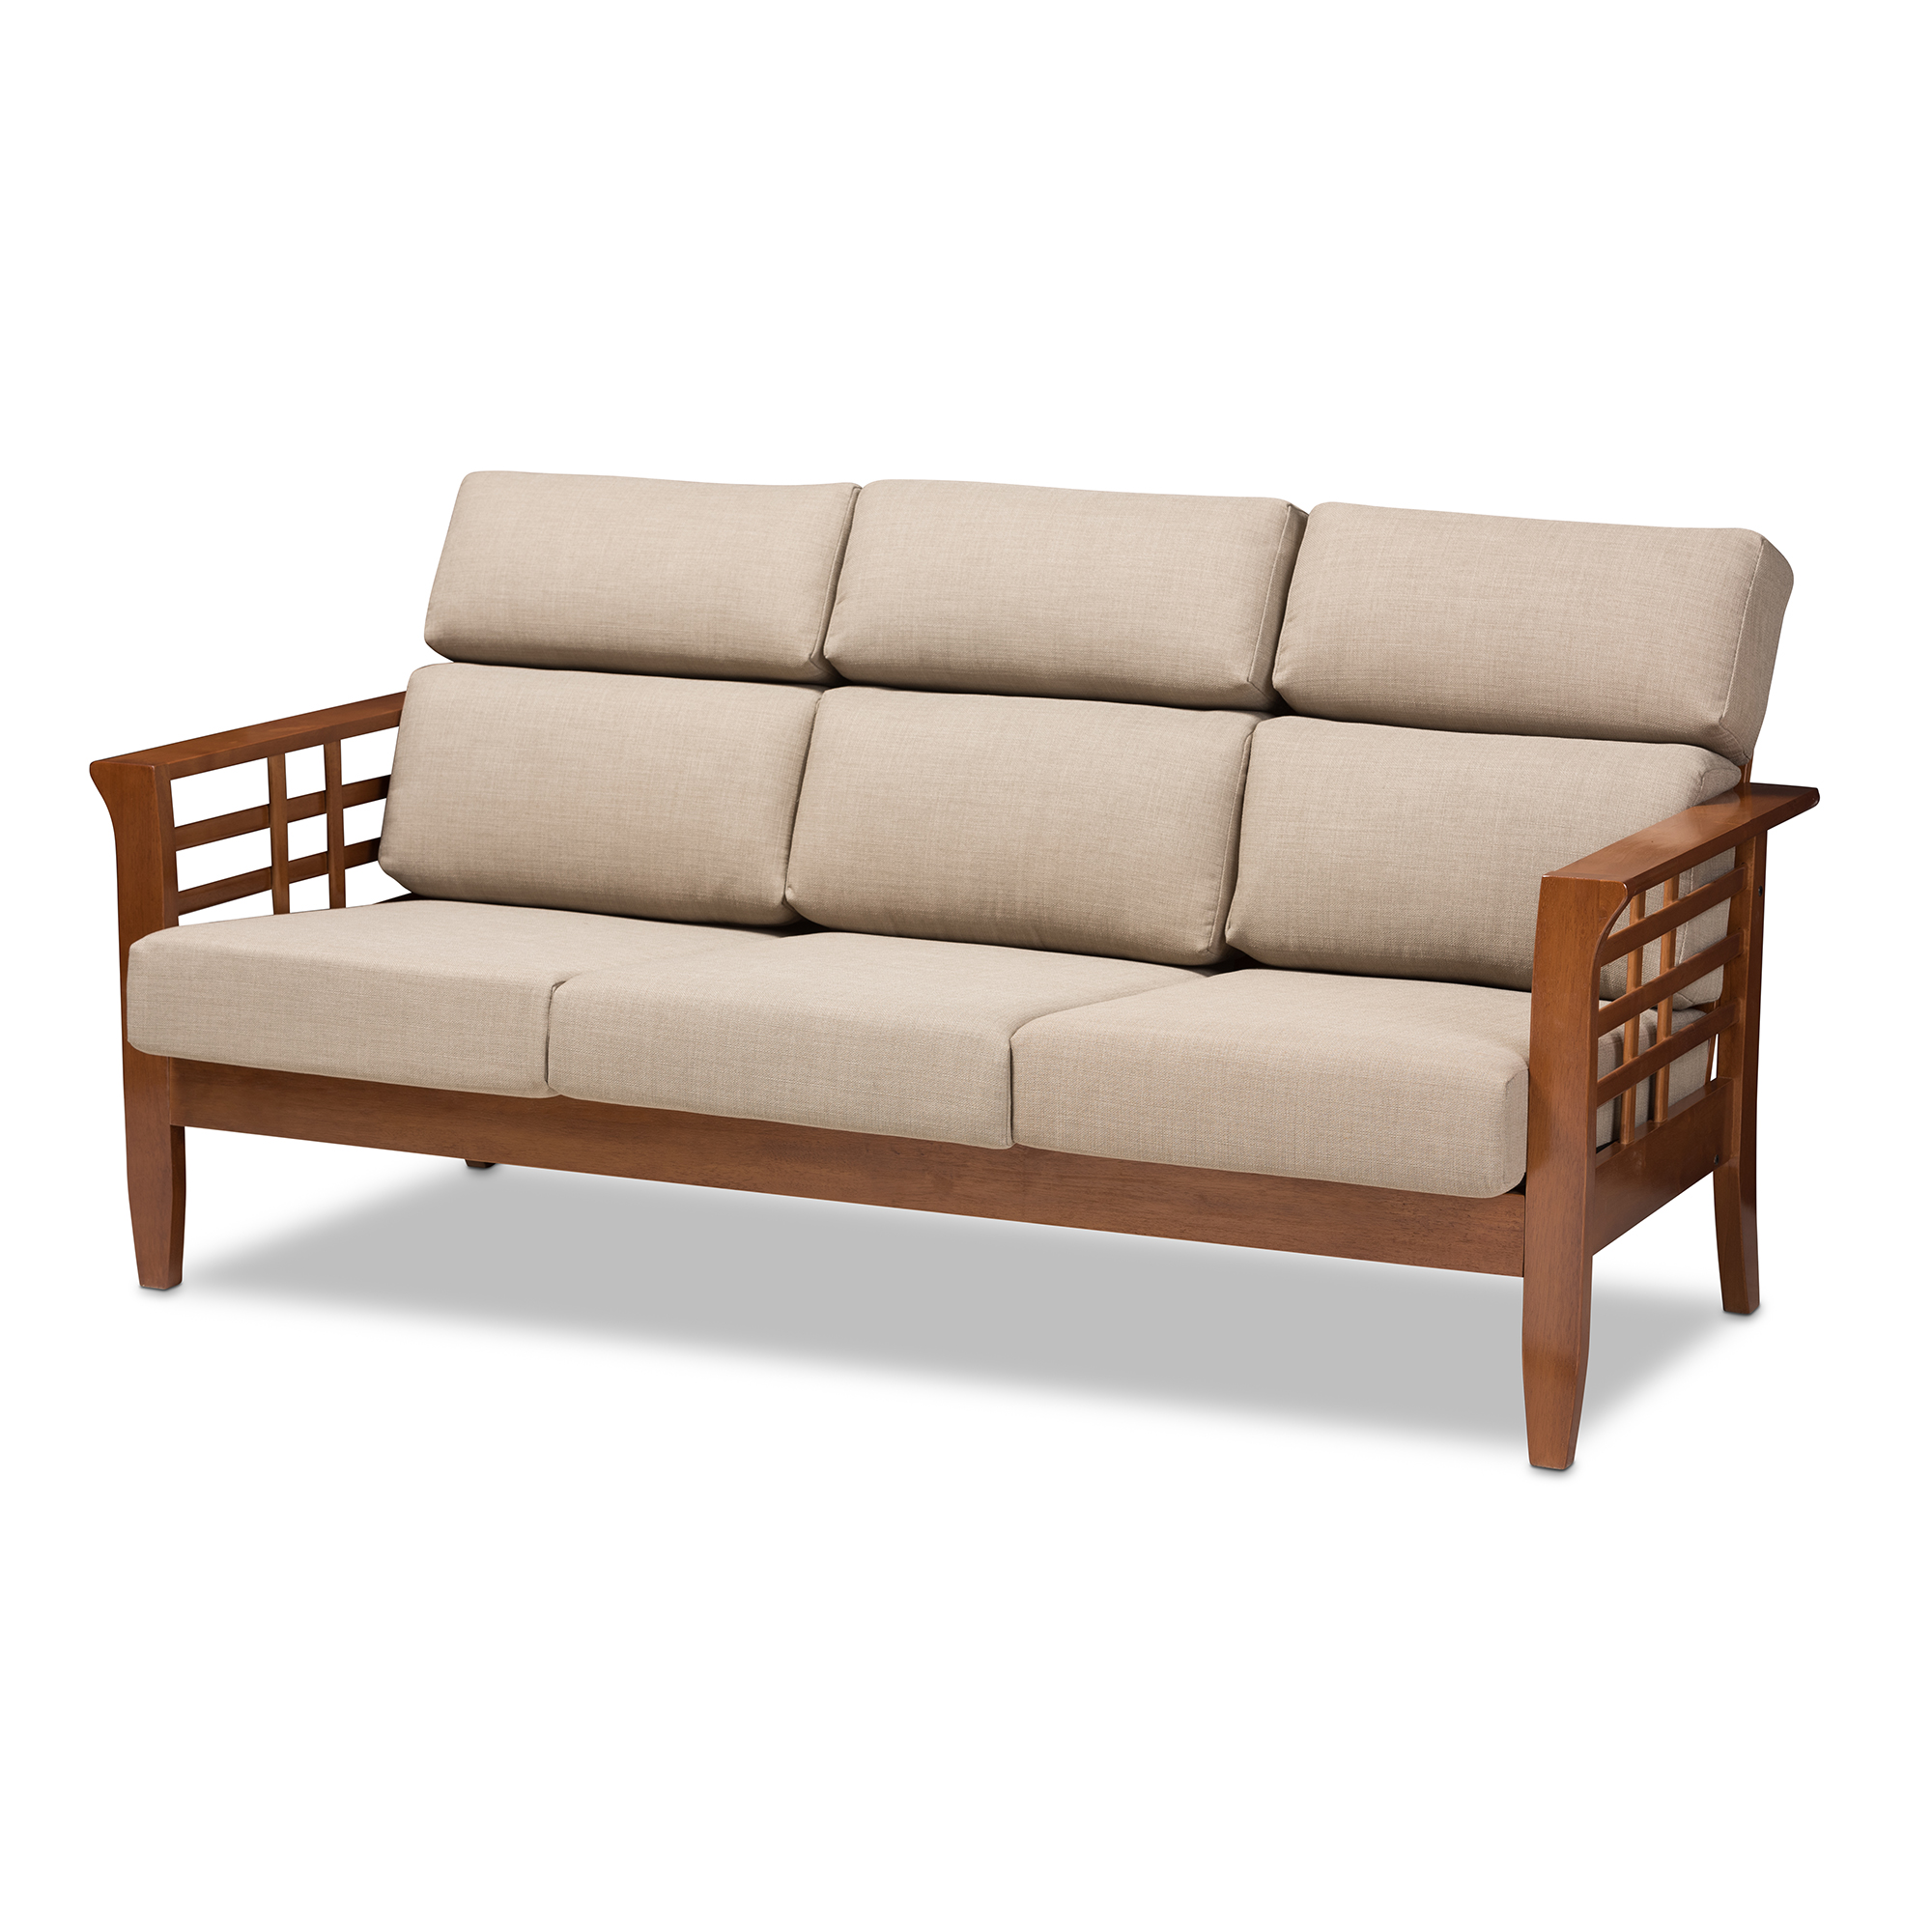 Baxton Studio Larissa Modern Classic Mission Style Cherry Finished Brown Wood and Fabric High Back Cushioned Living Room 3-Seater Sofa, Multiple Colors